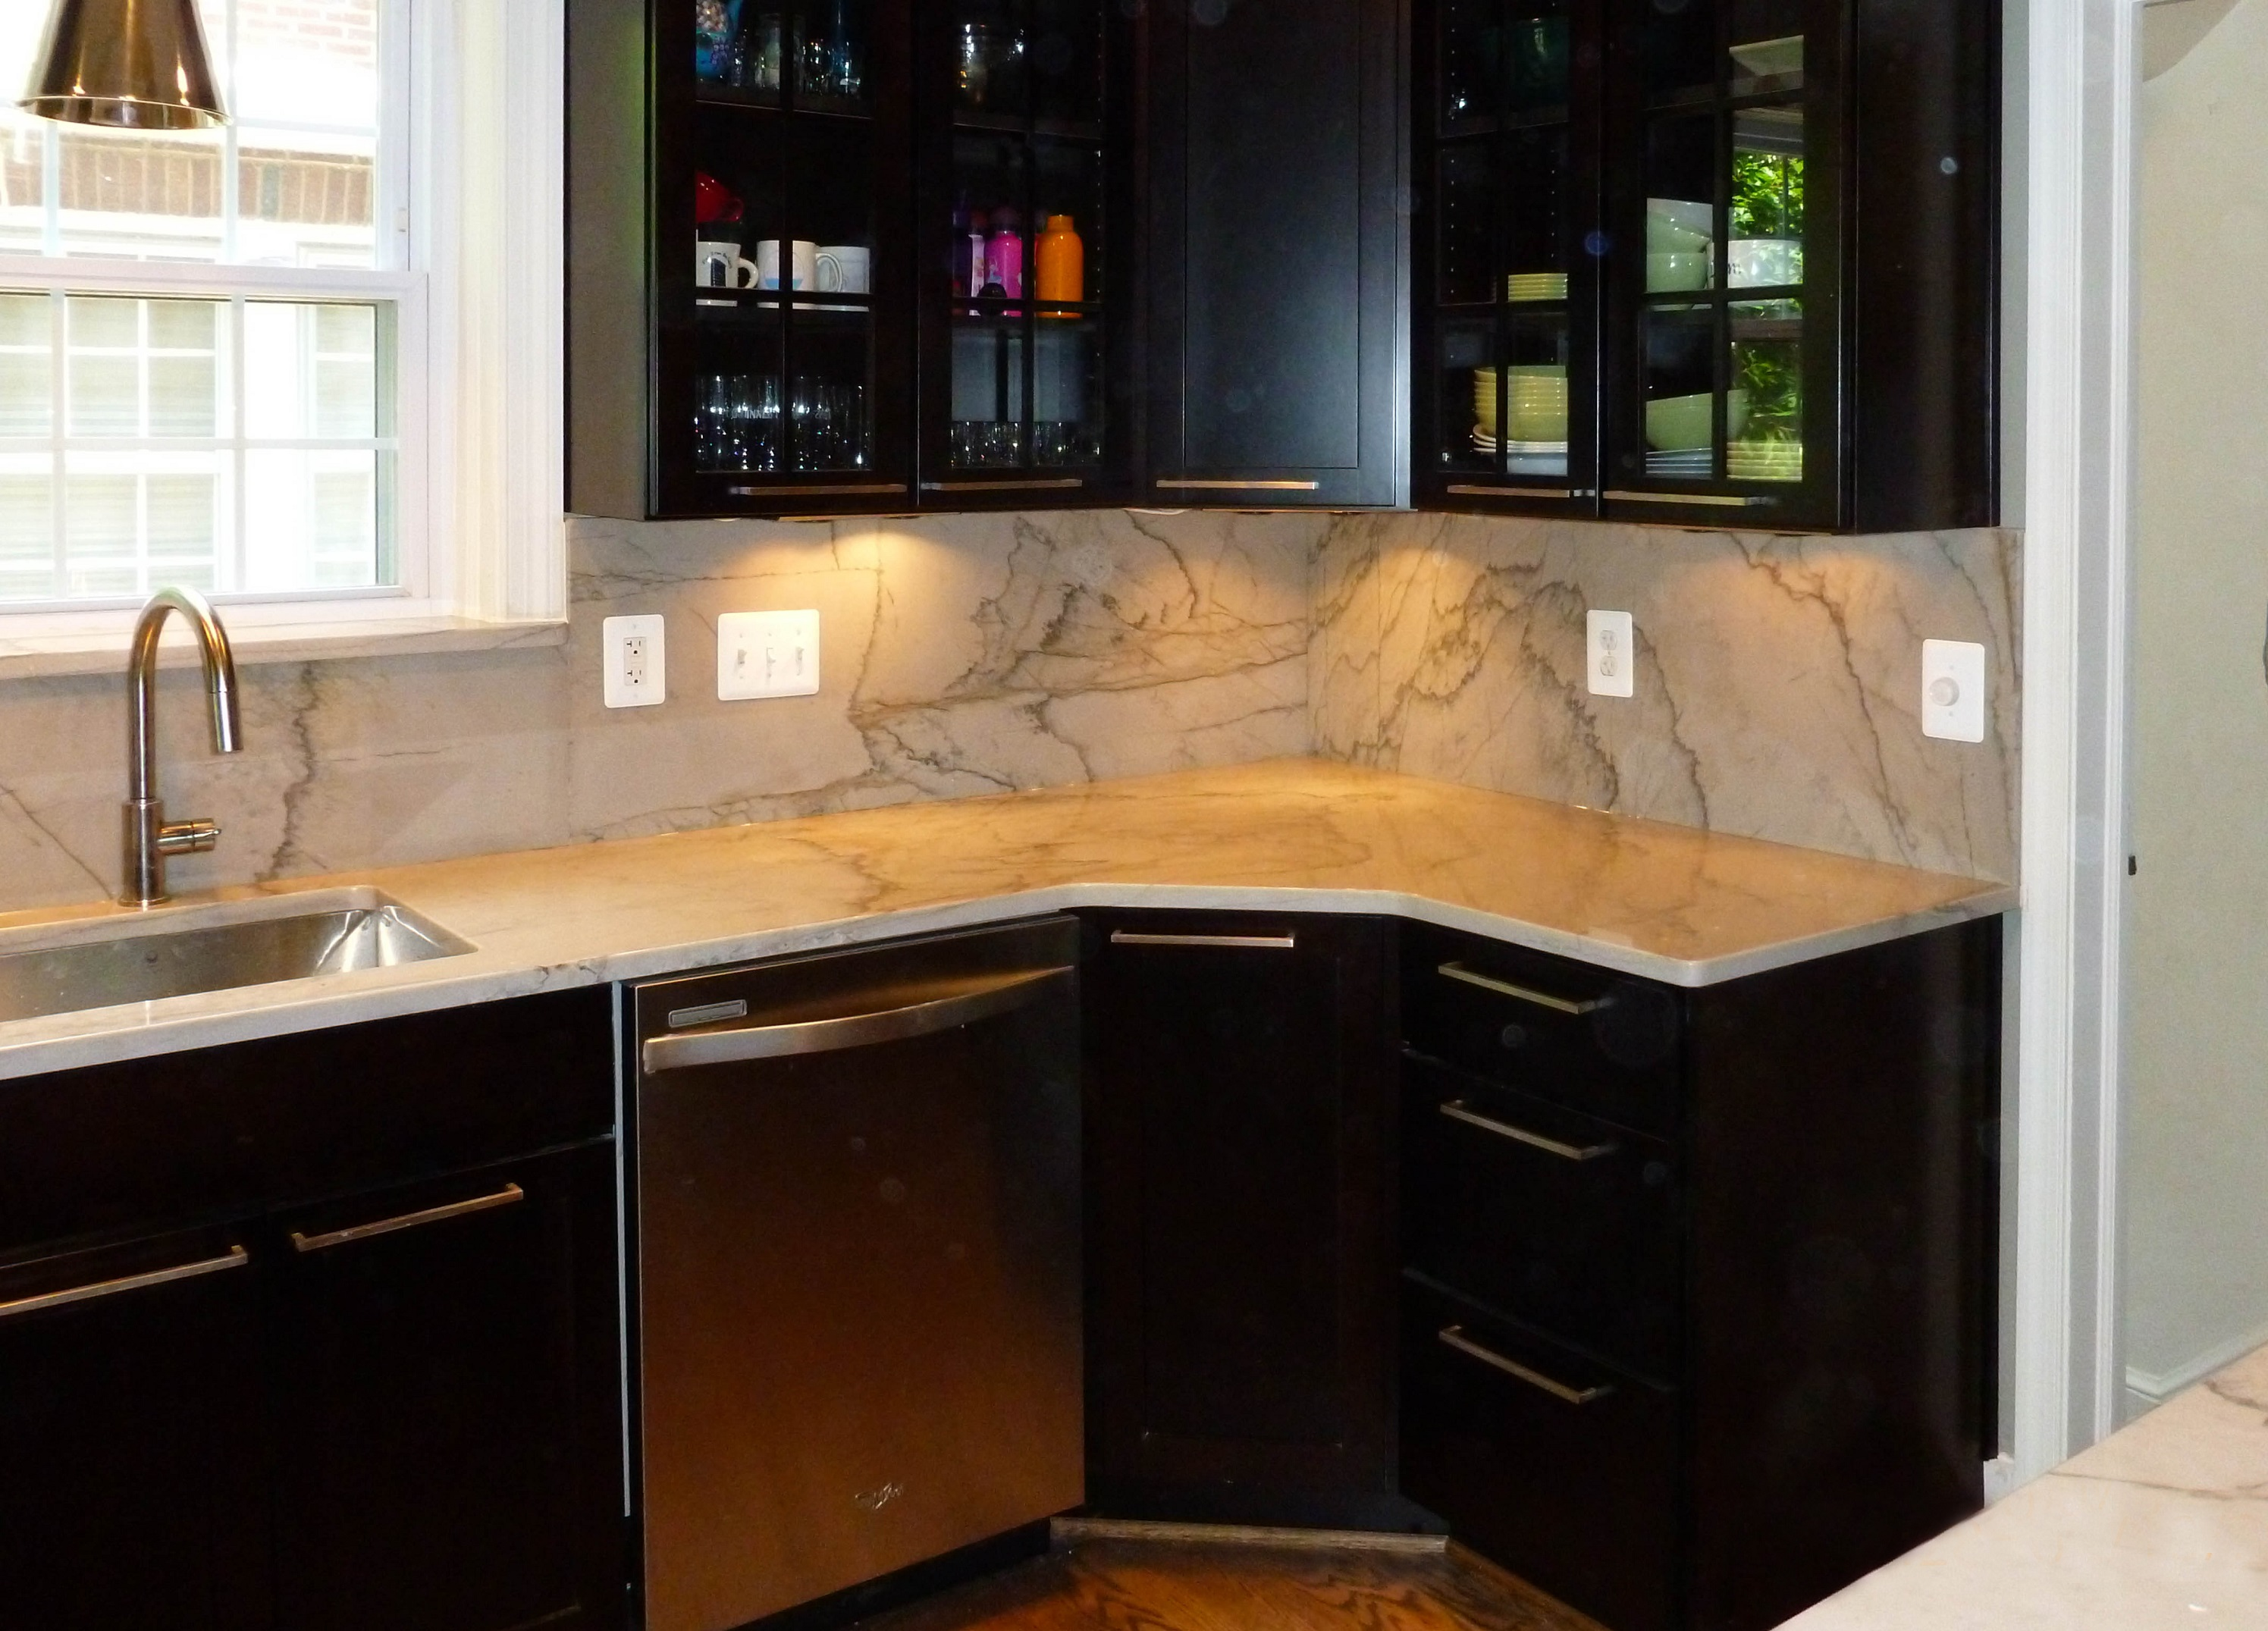 Kitchen Remodeling Contractor Fairfax, Virginia